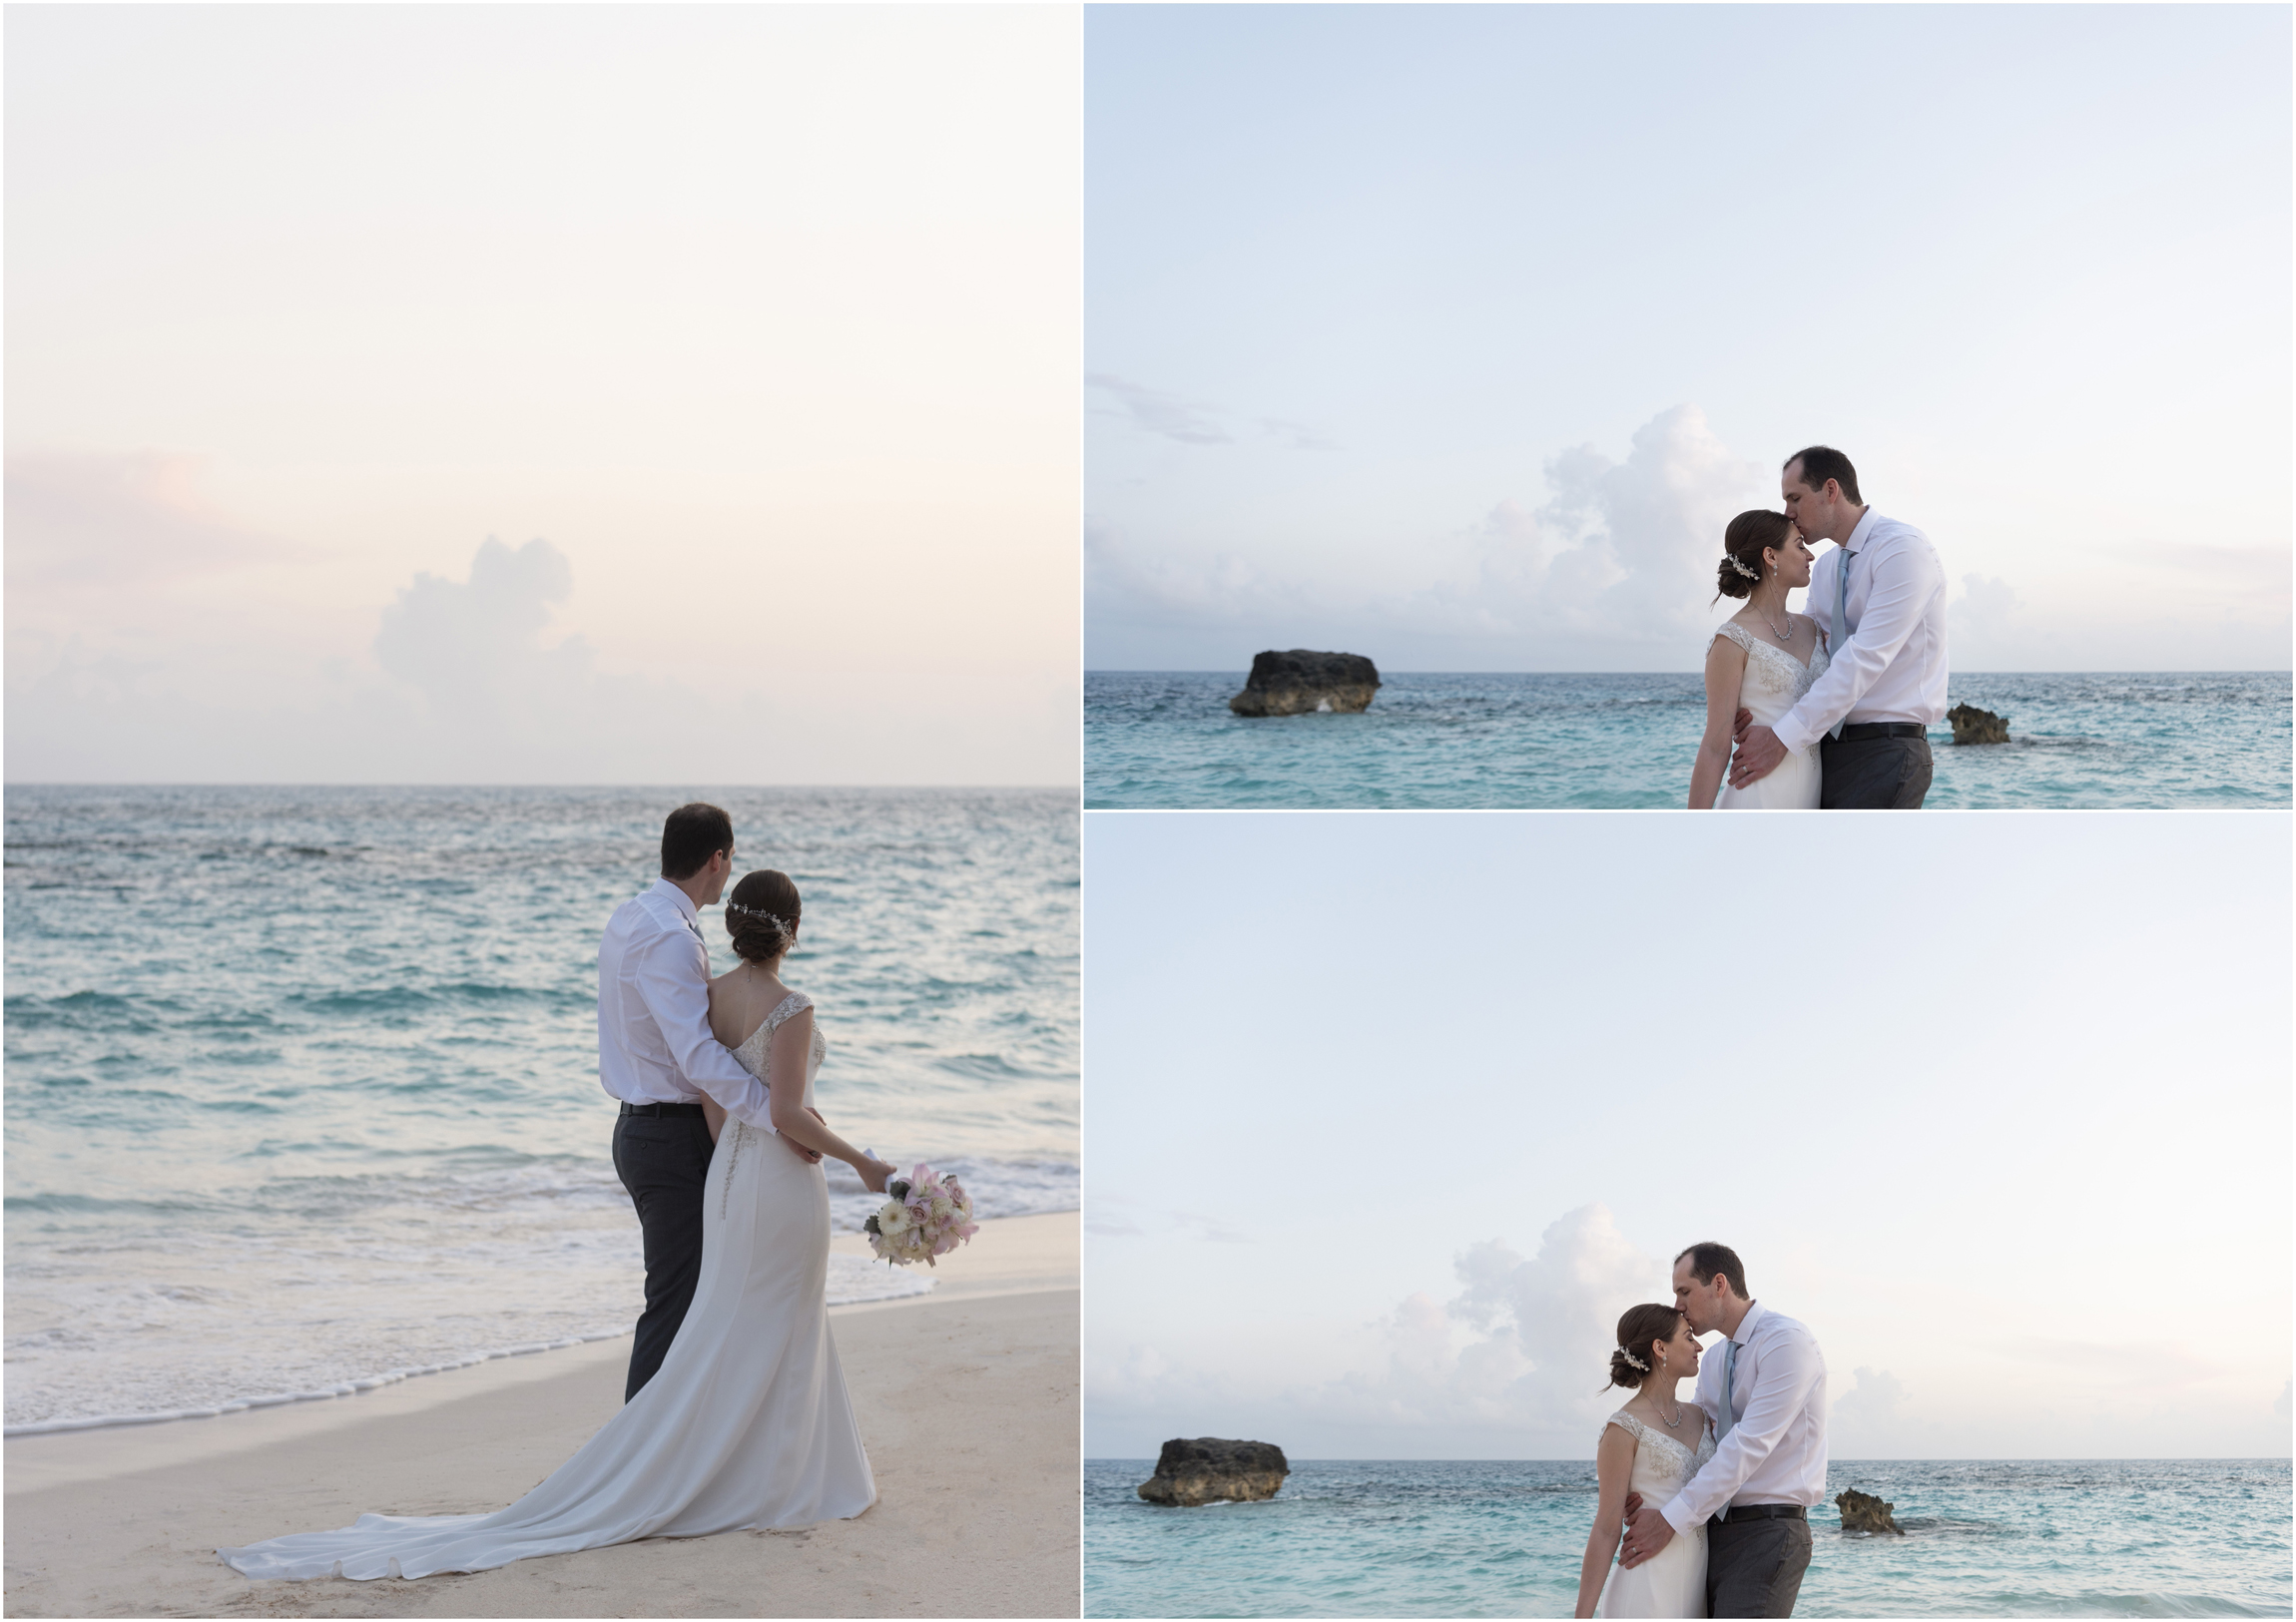 ©FianderFoto_Caribbean_Wedding_Photographer_The Reefs_Bermuda_Lauren_Erik_090.jpg